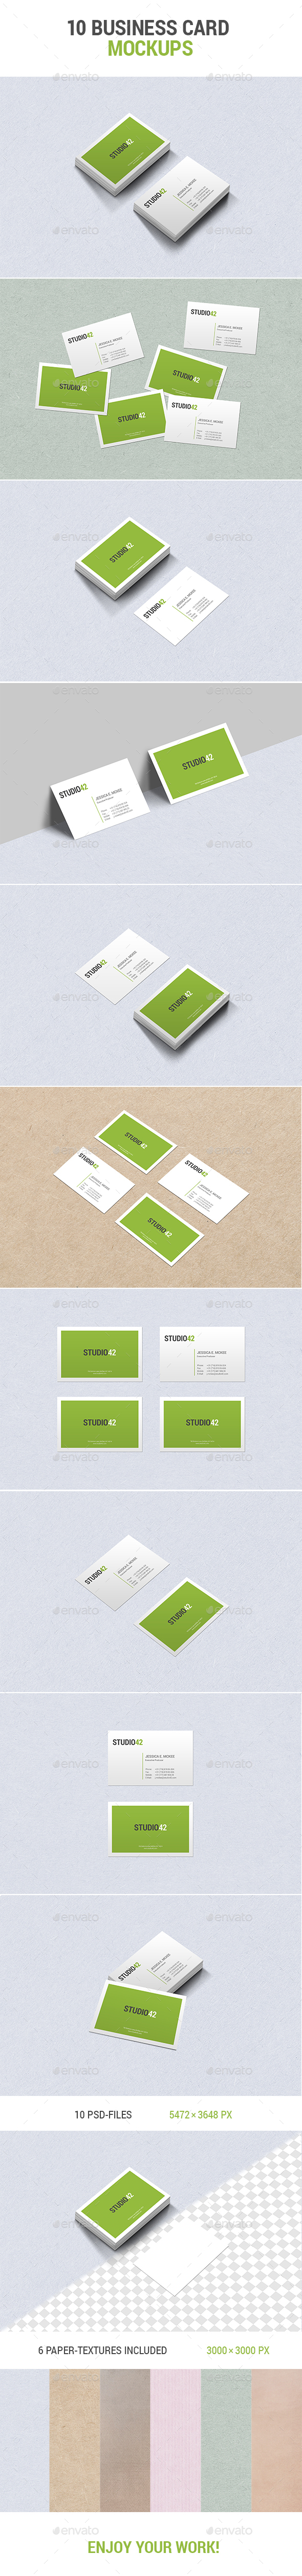 10 Business Card Mockups - Business Cards Print